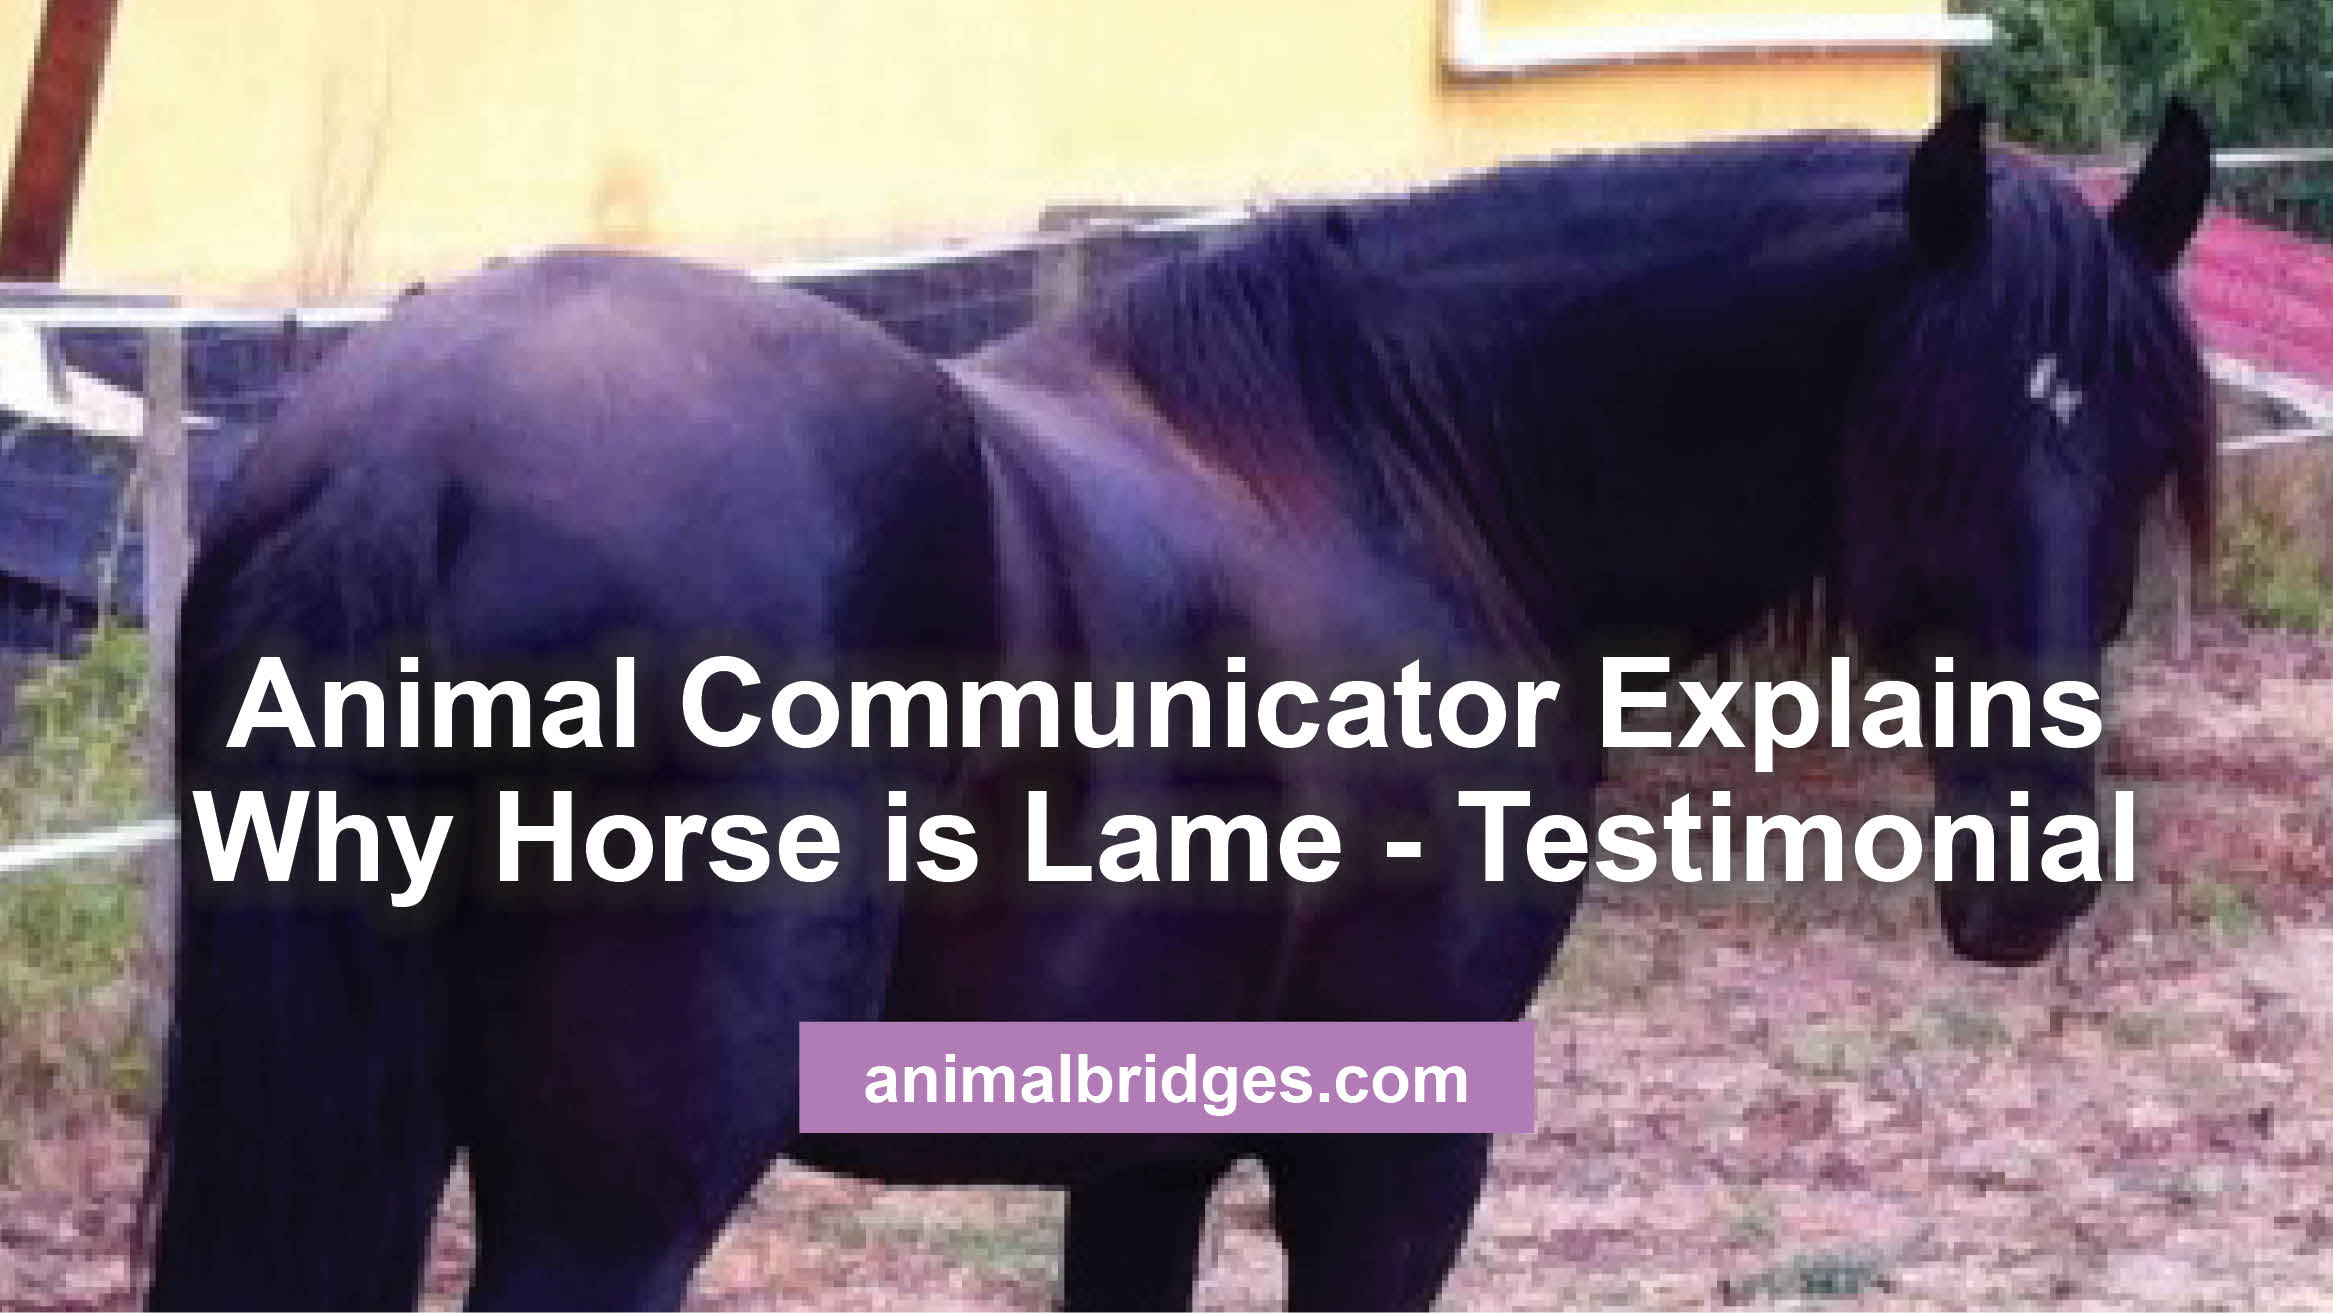 lame-horse